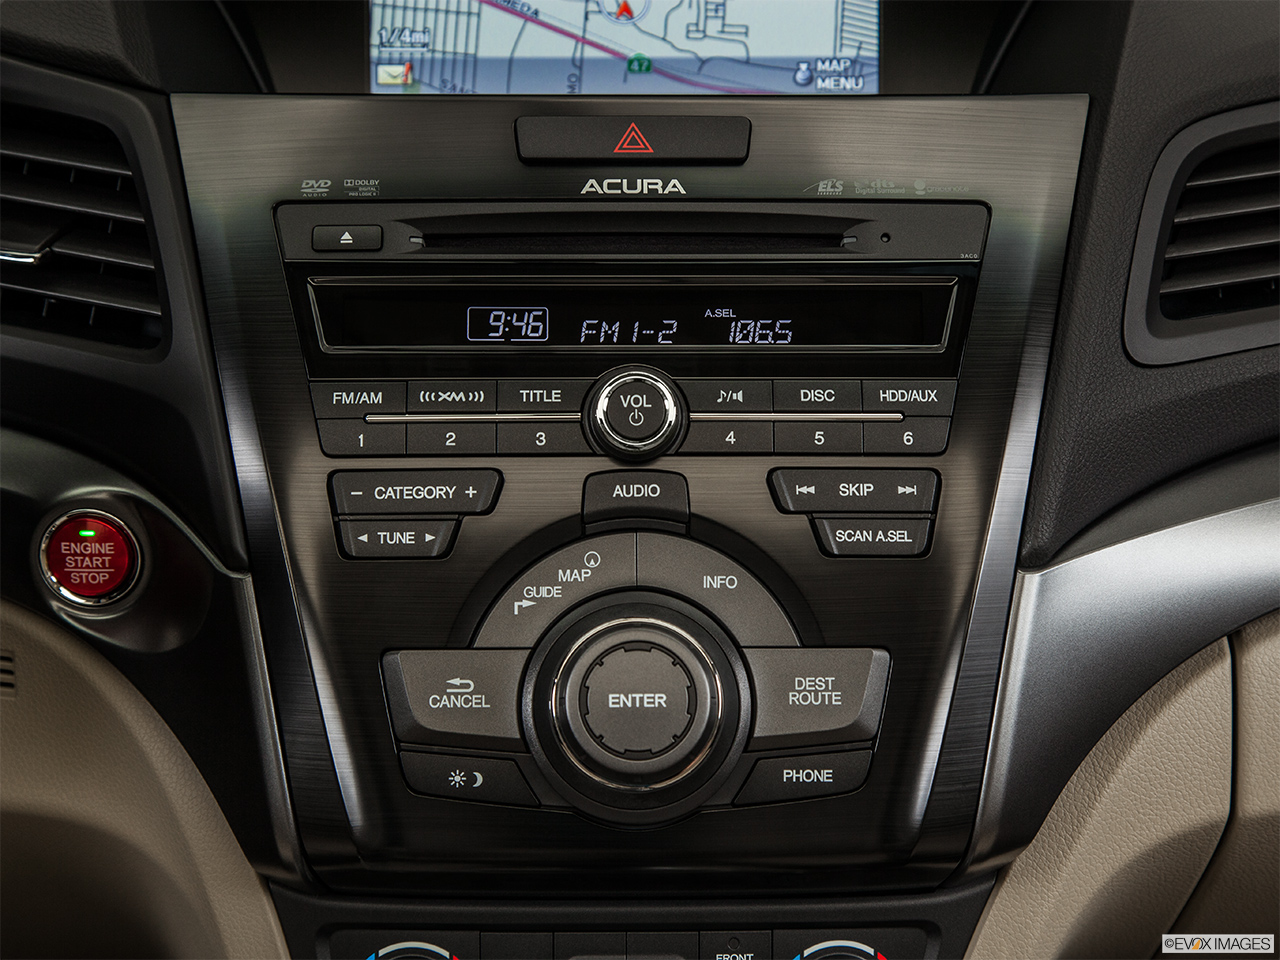 2014 Acura ILX Hybrid Base Closeup of radio head unit